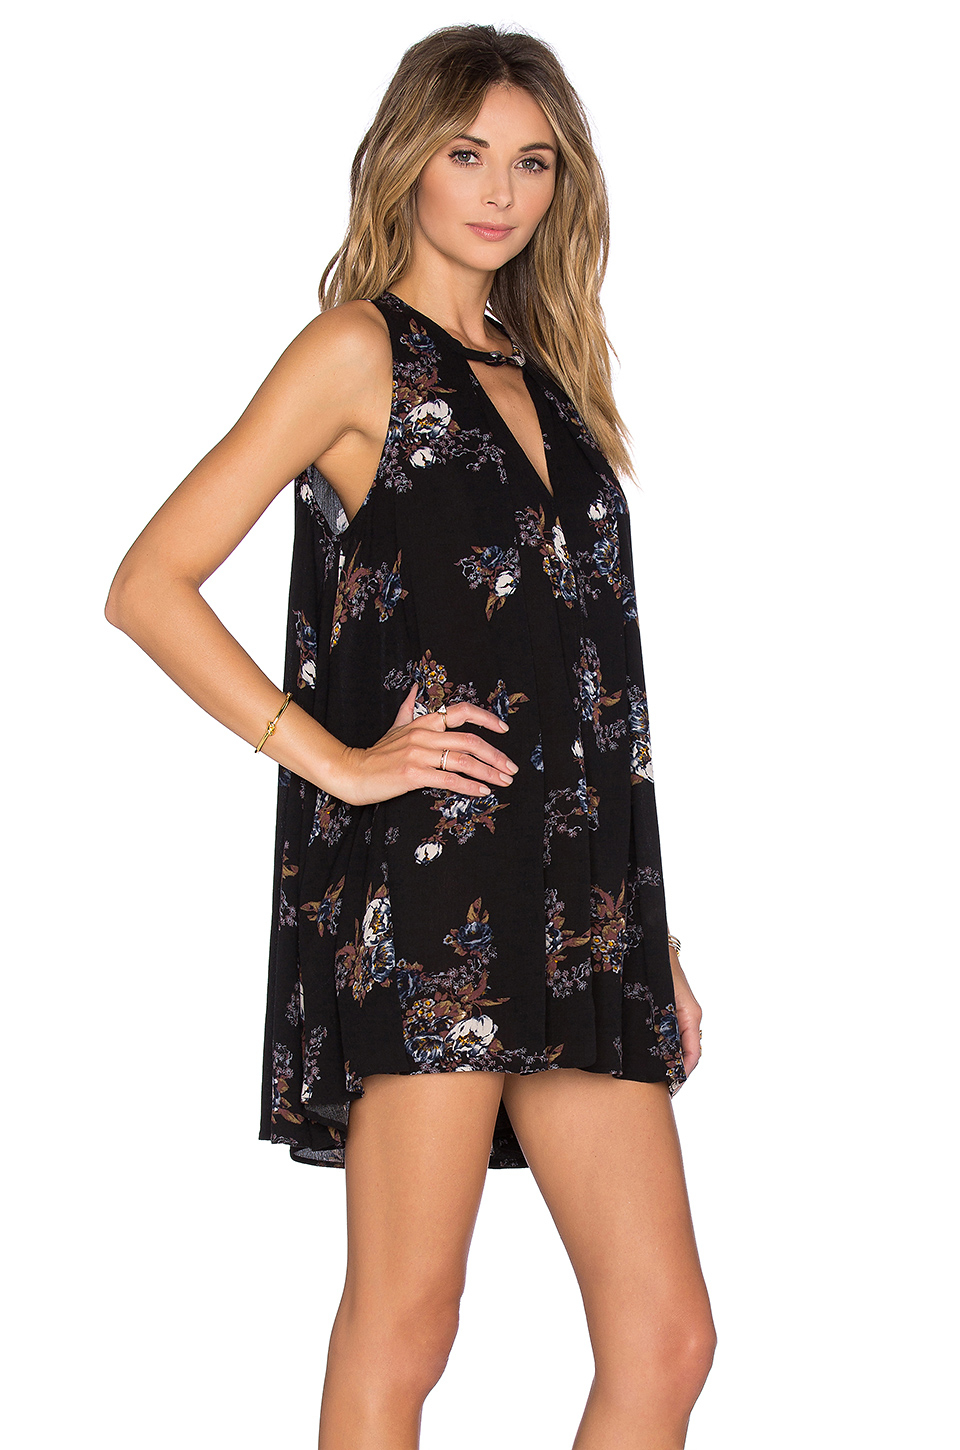 8018f333cb56 Gallery. Previously sold at: REVOLVE · Women's Swing Dresses ...